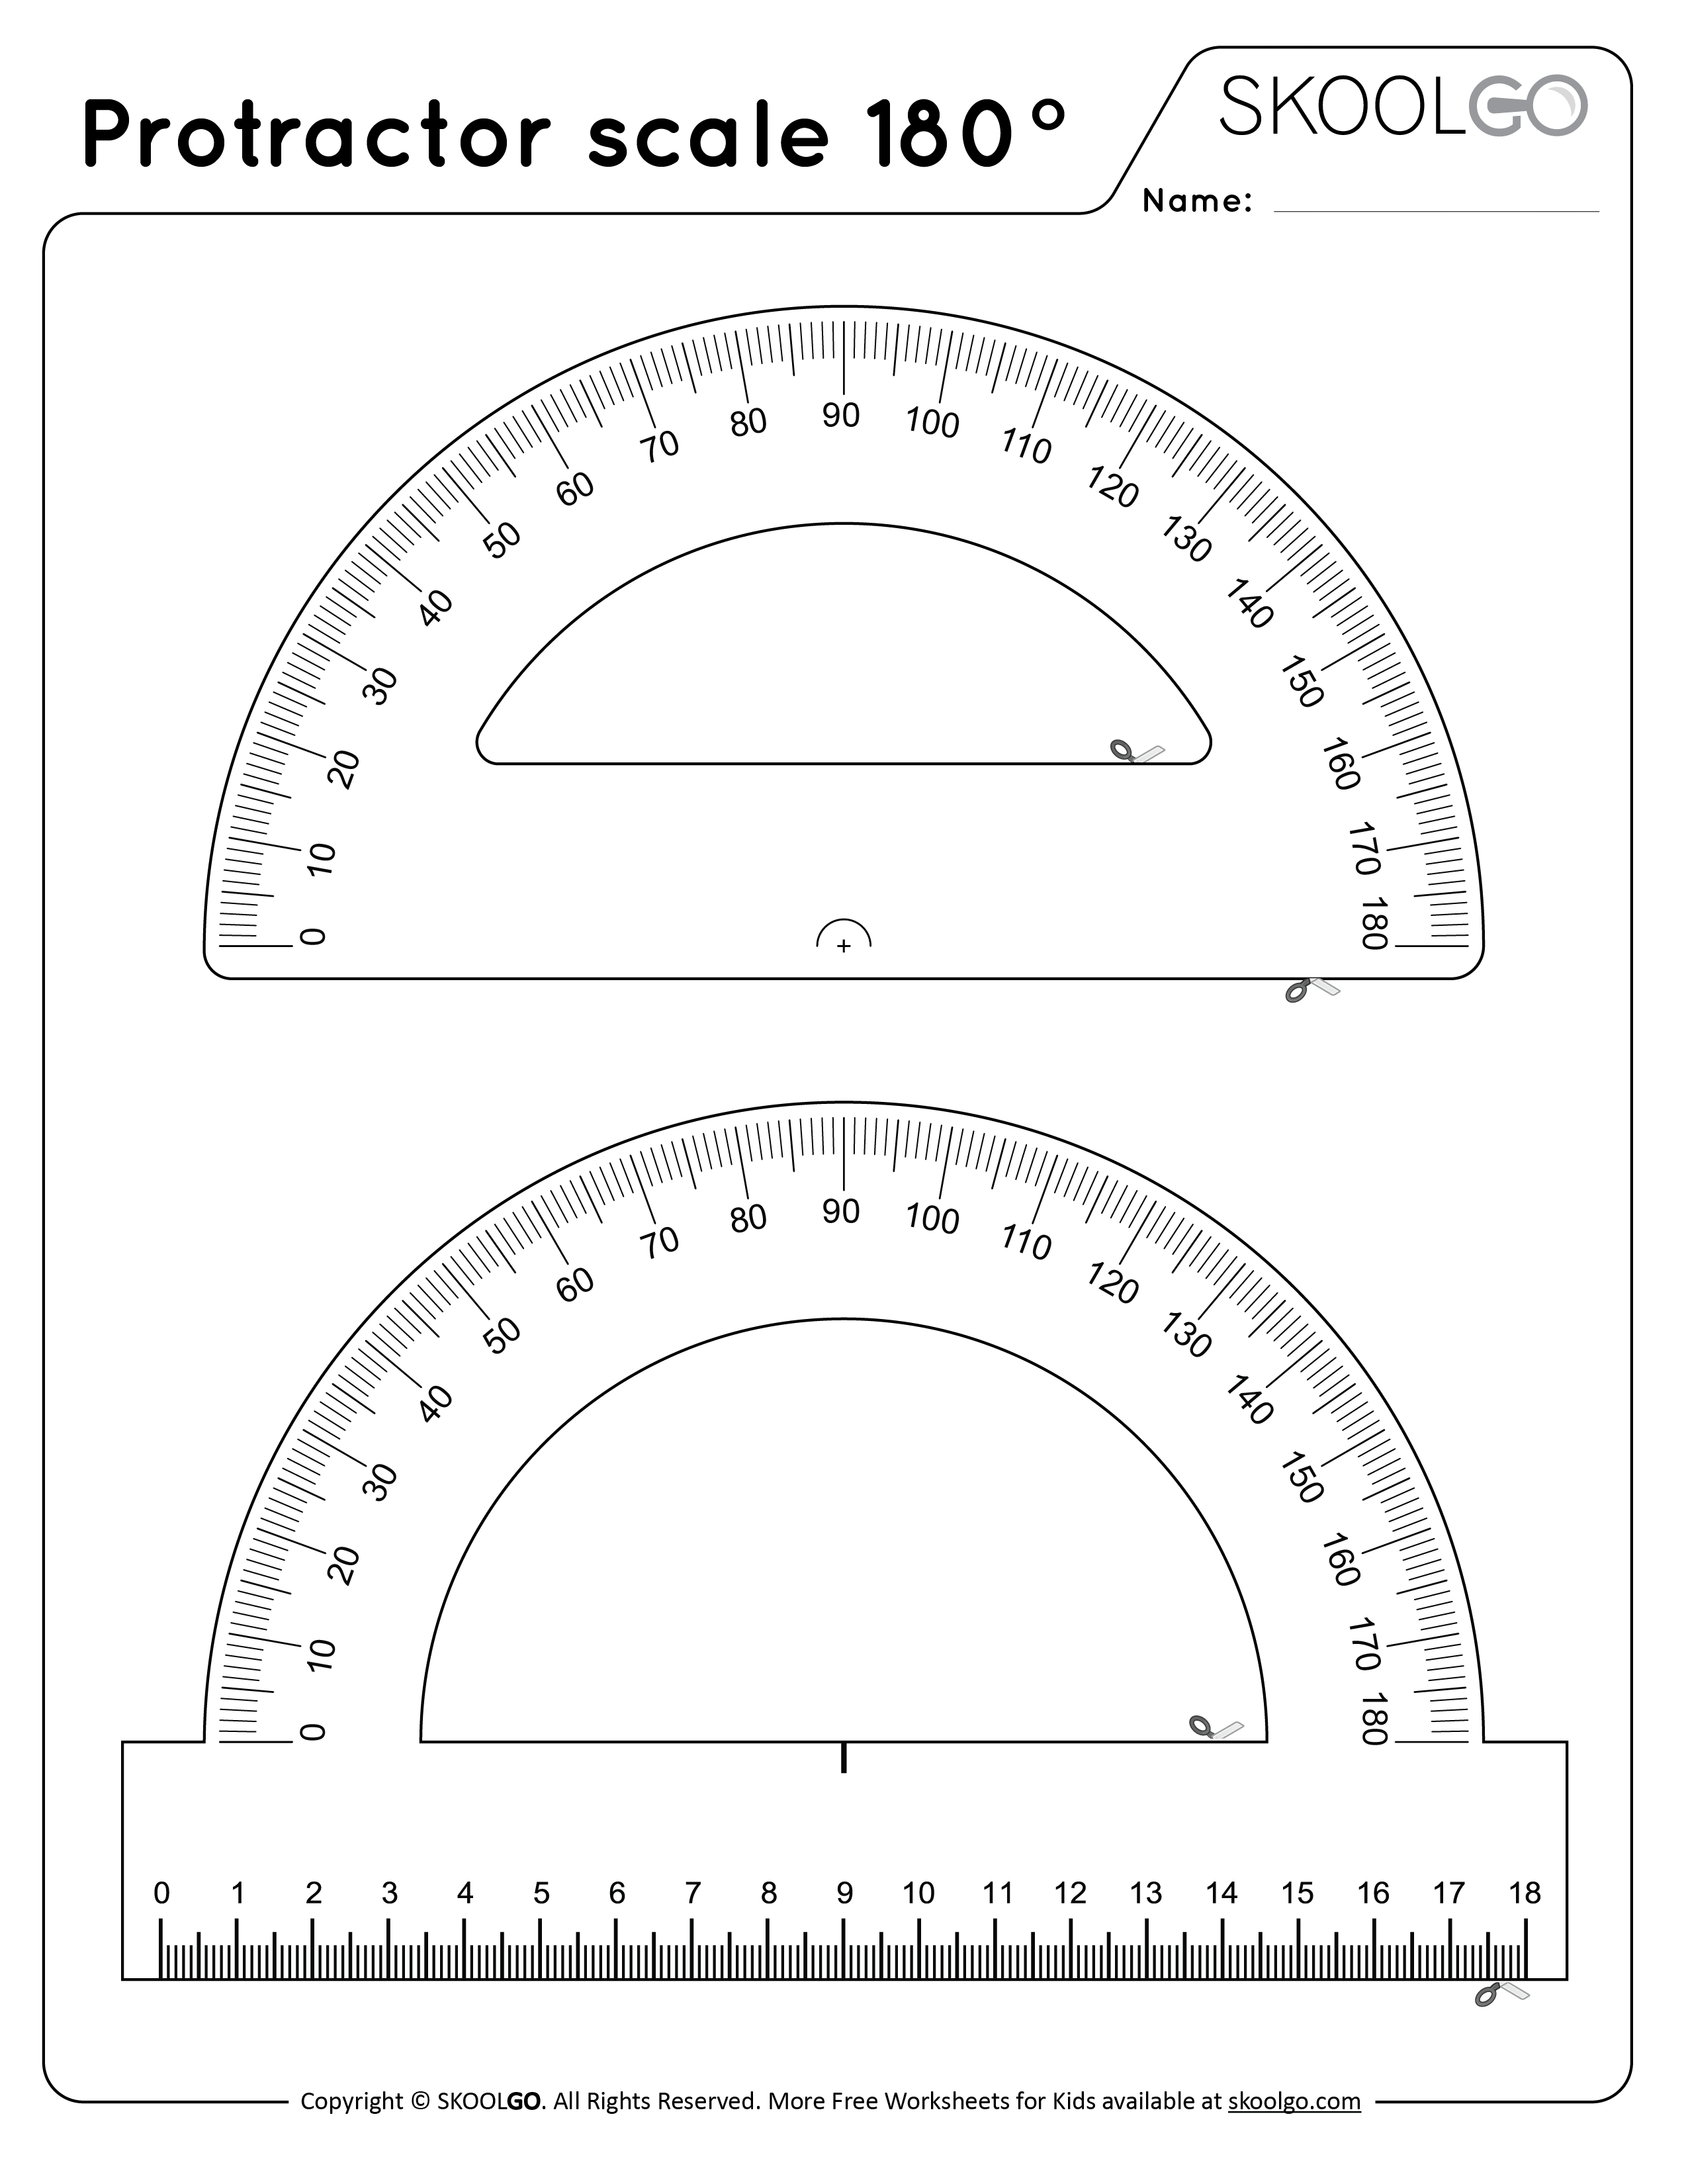 Protractor Scale 180 - Free Black and White Worksheet for Kids